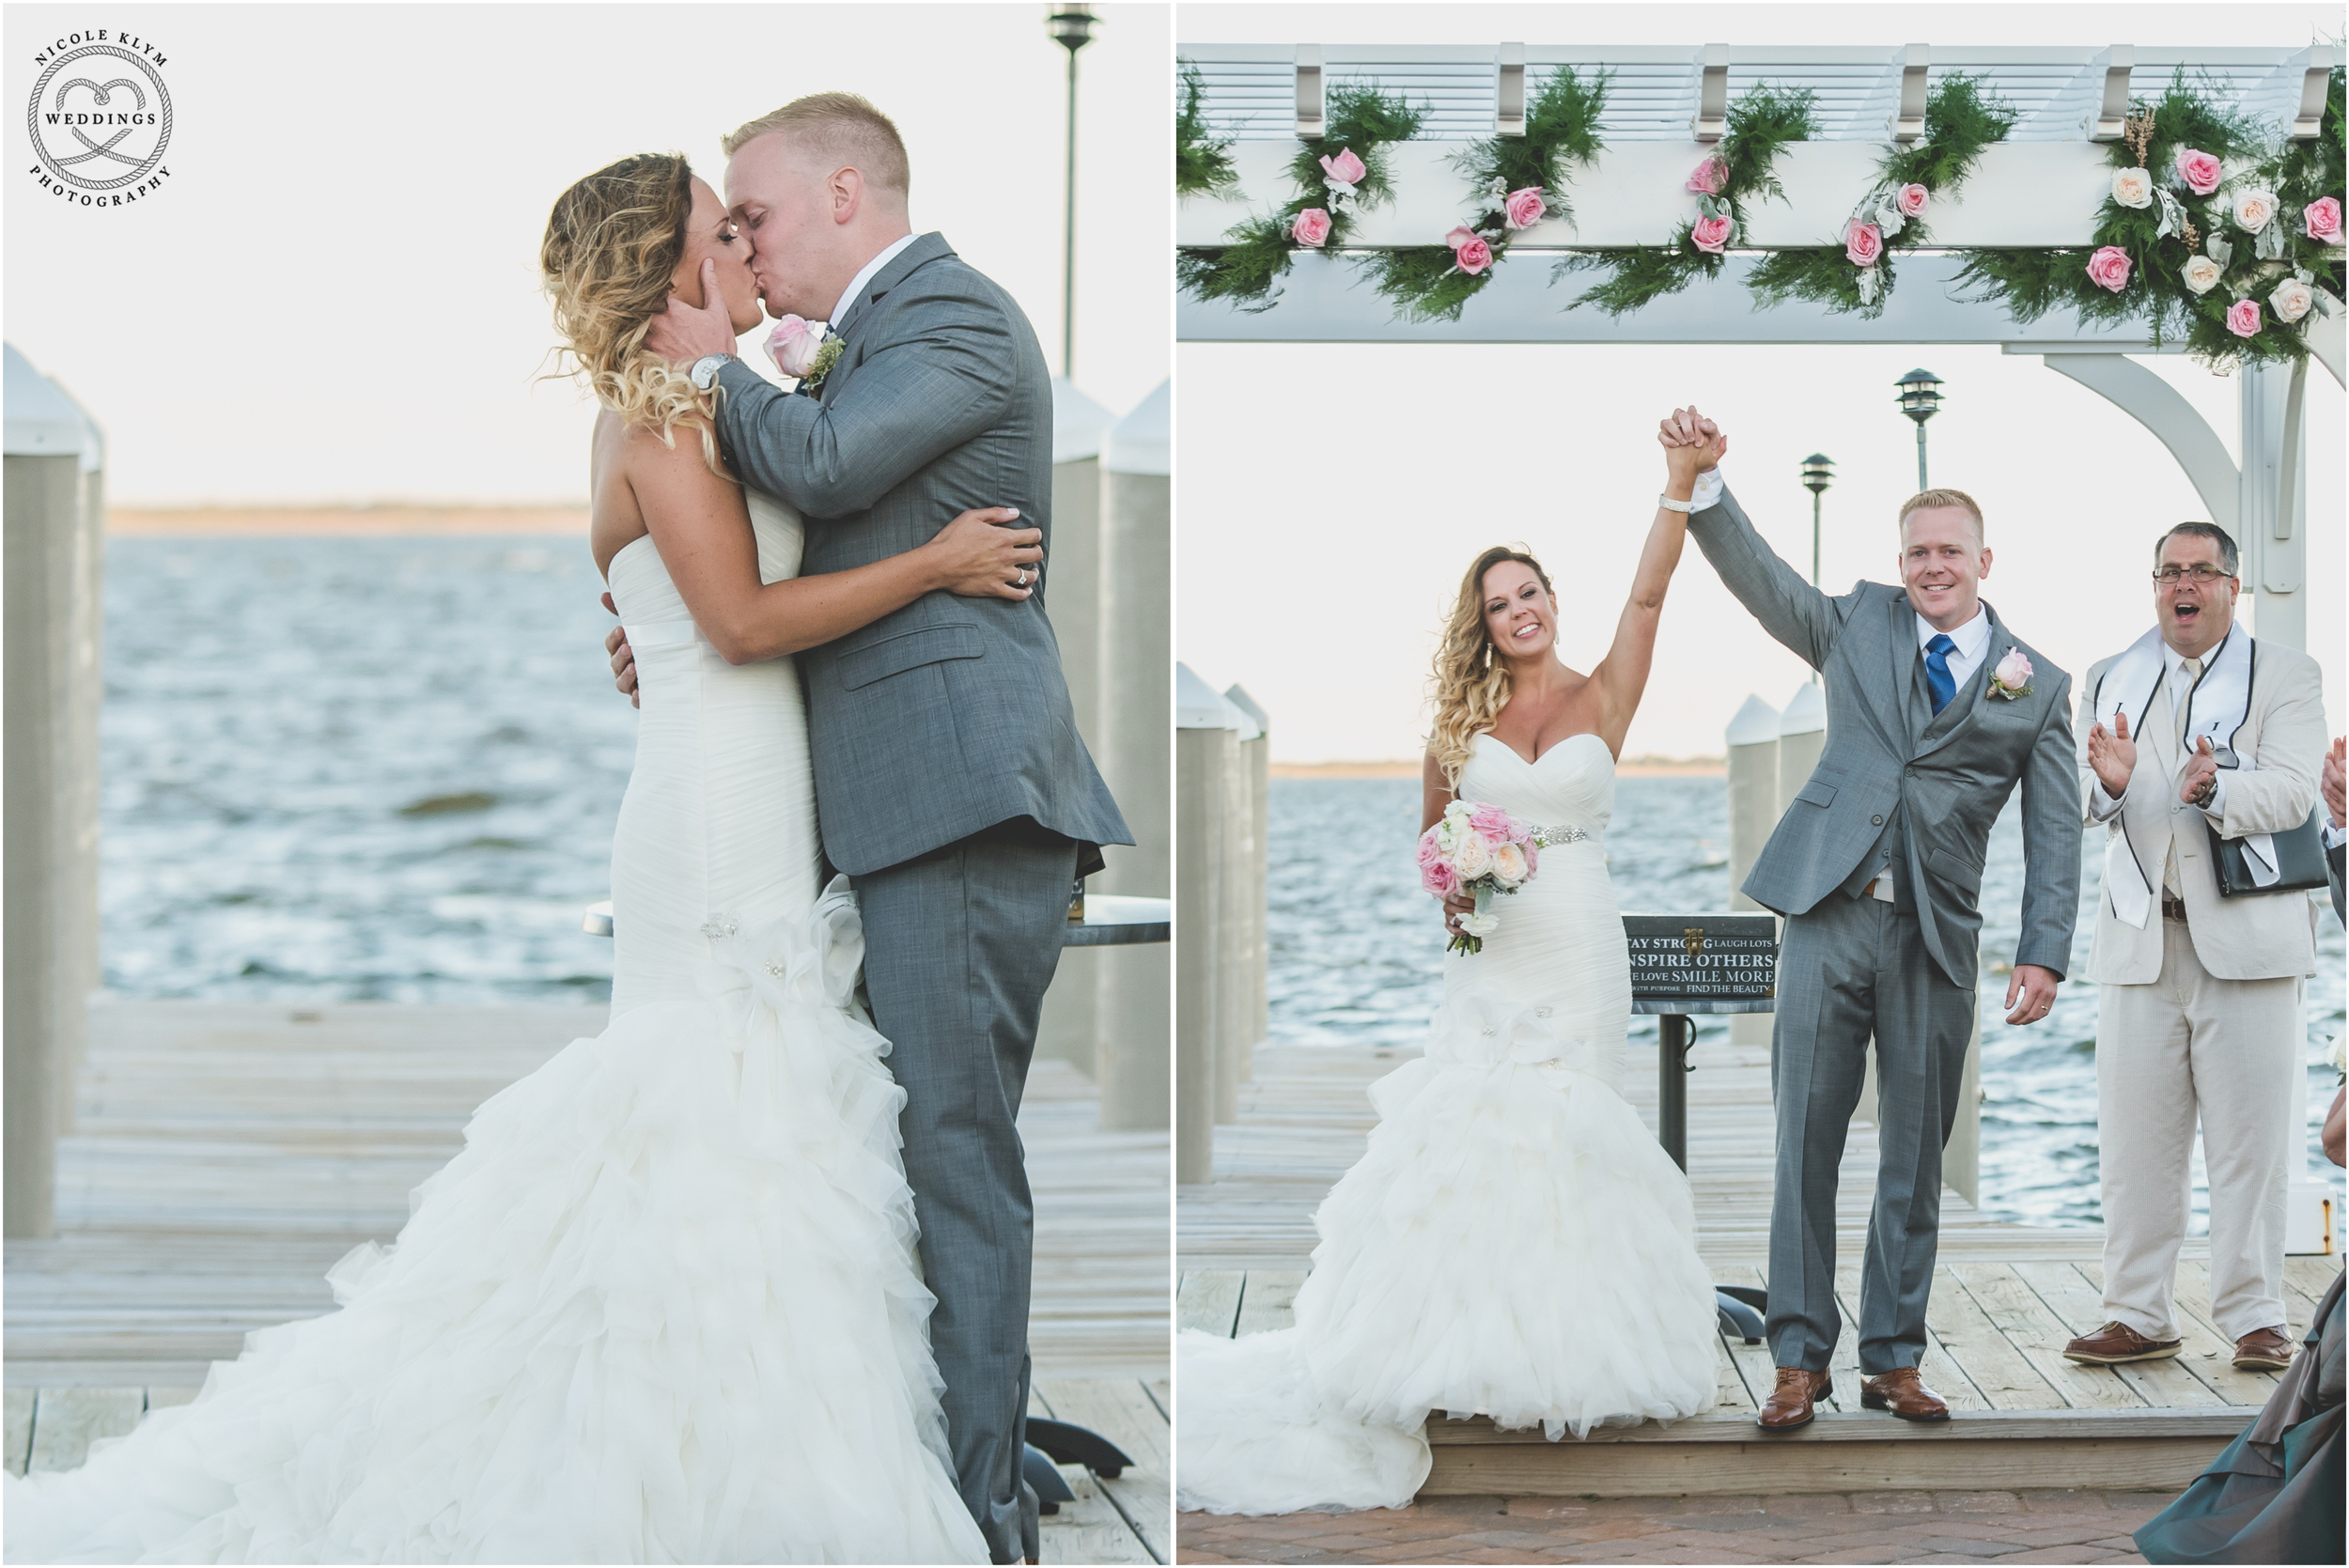 Nautical wedding at the waters edge meghan kyle nicole klym nautical navy wedding at the waters edge in bayville nj ombrellifo Choice Image